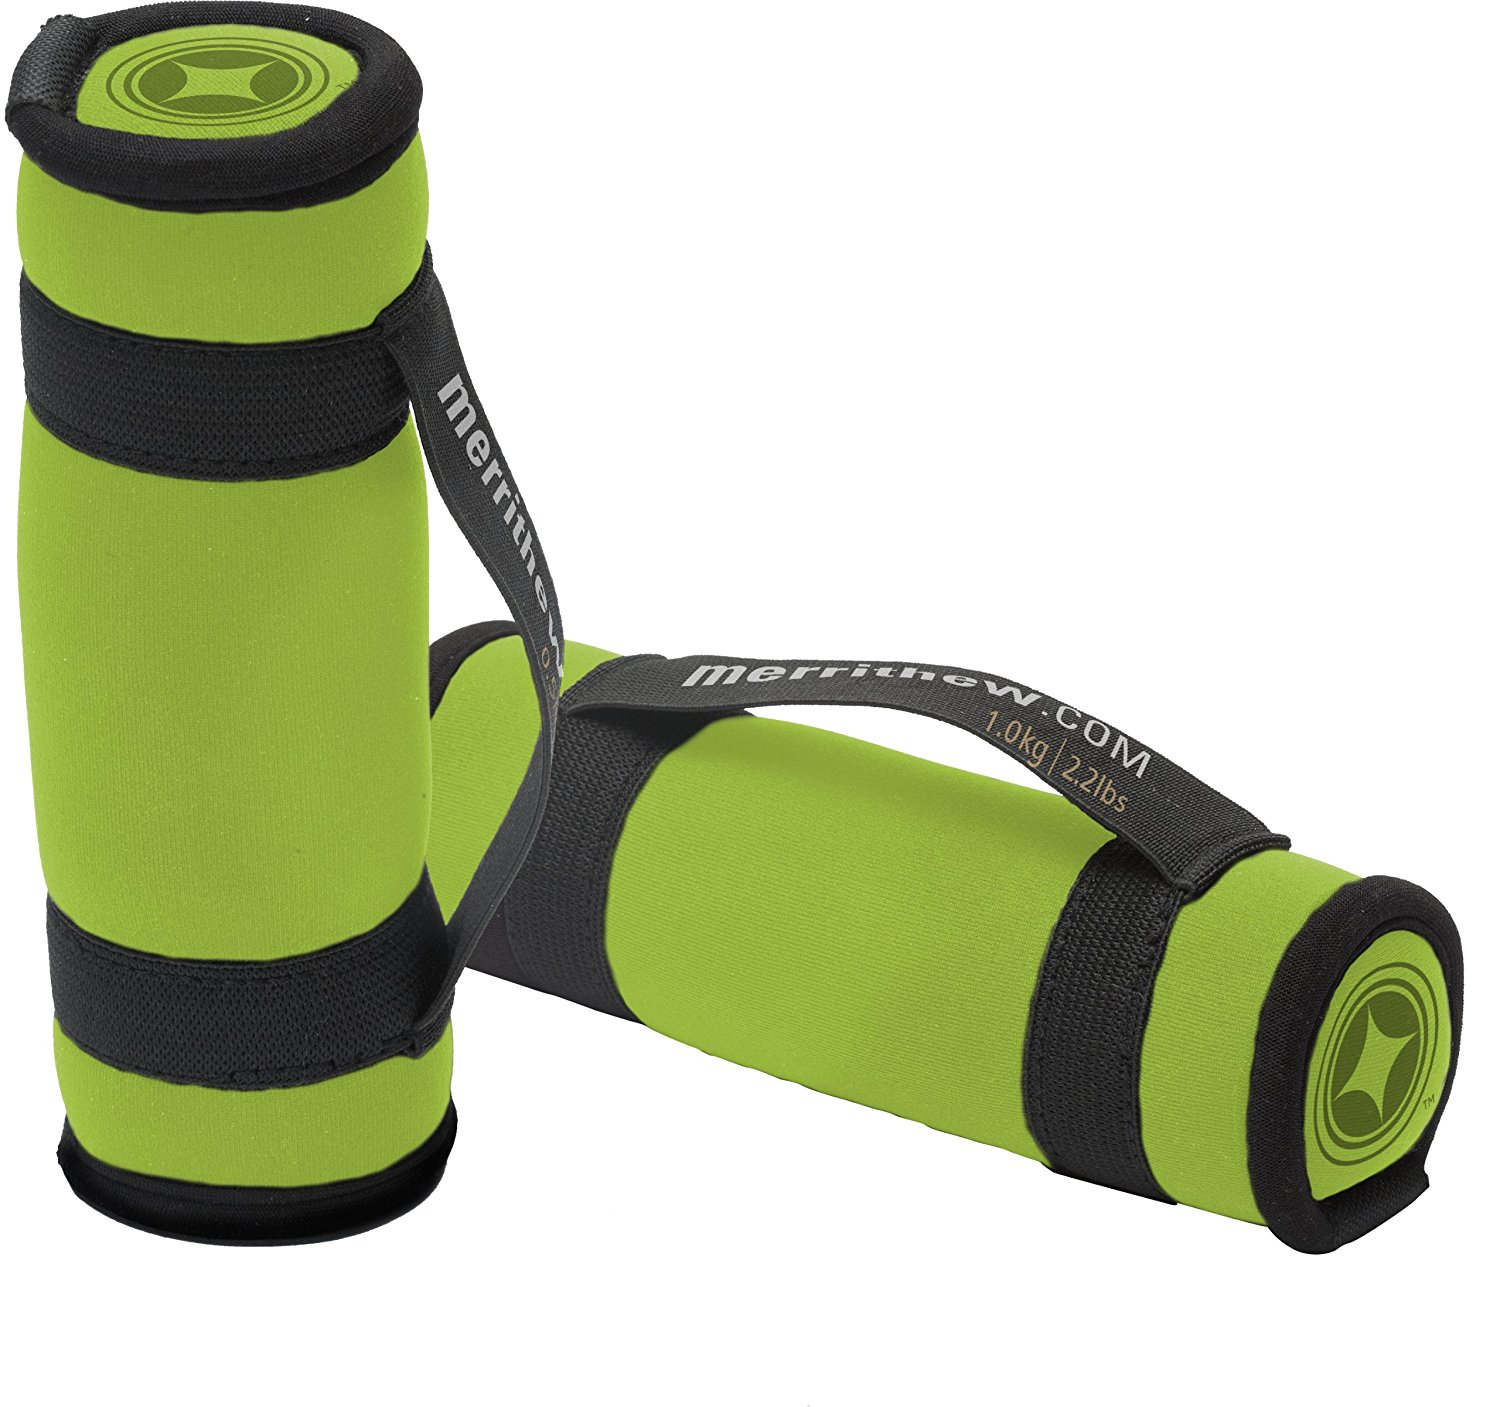 Merrithew Soft Dumbbells with Straps